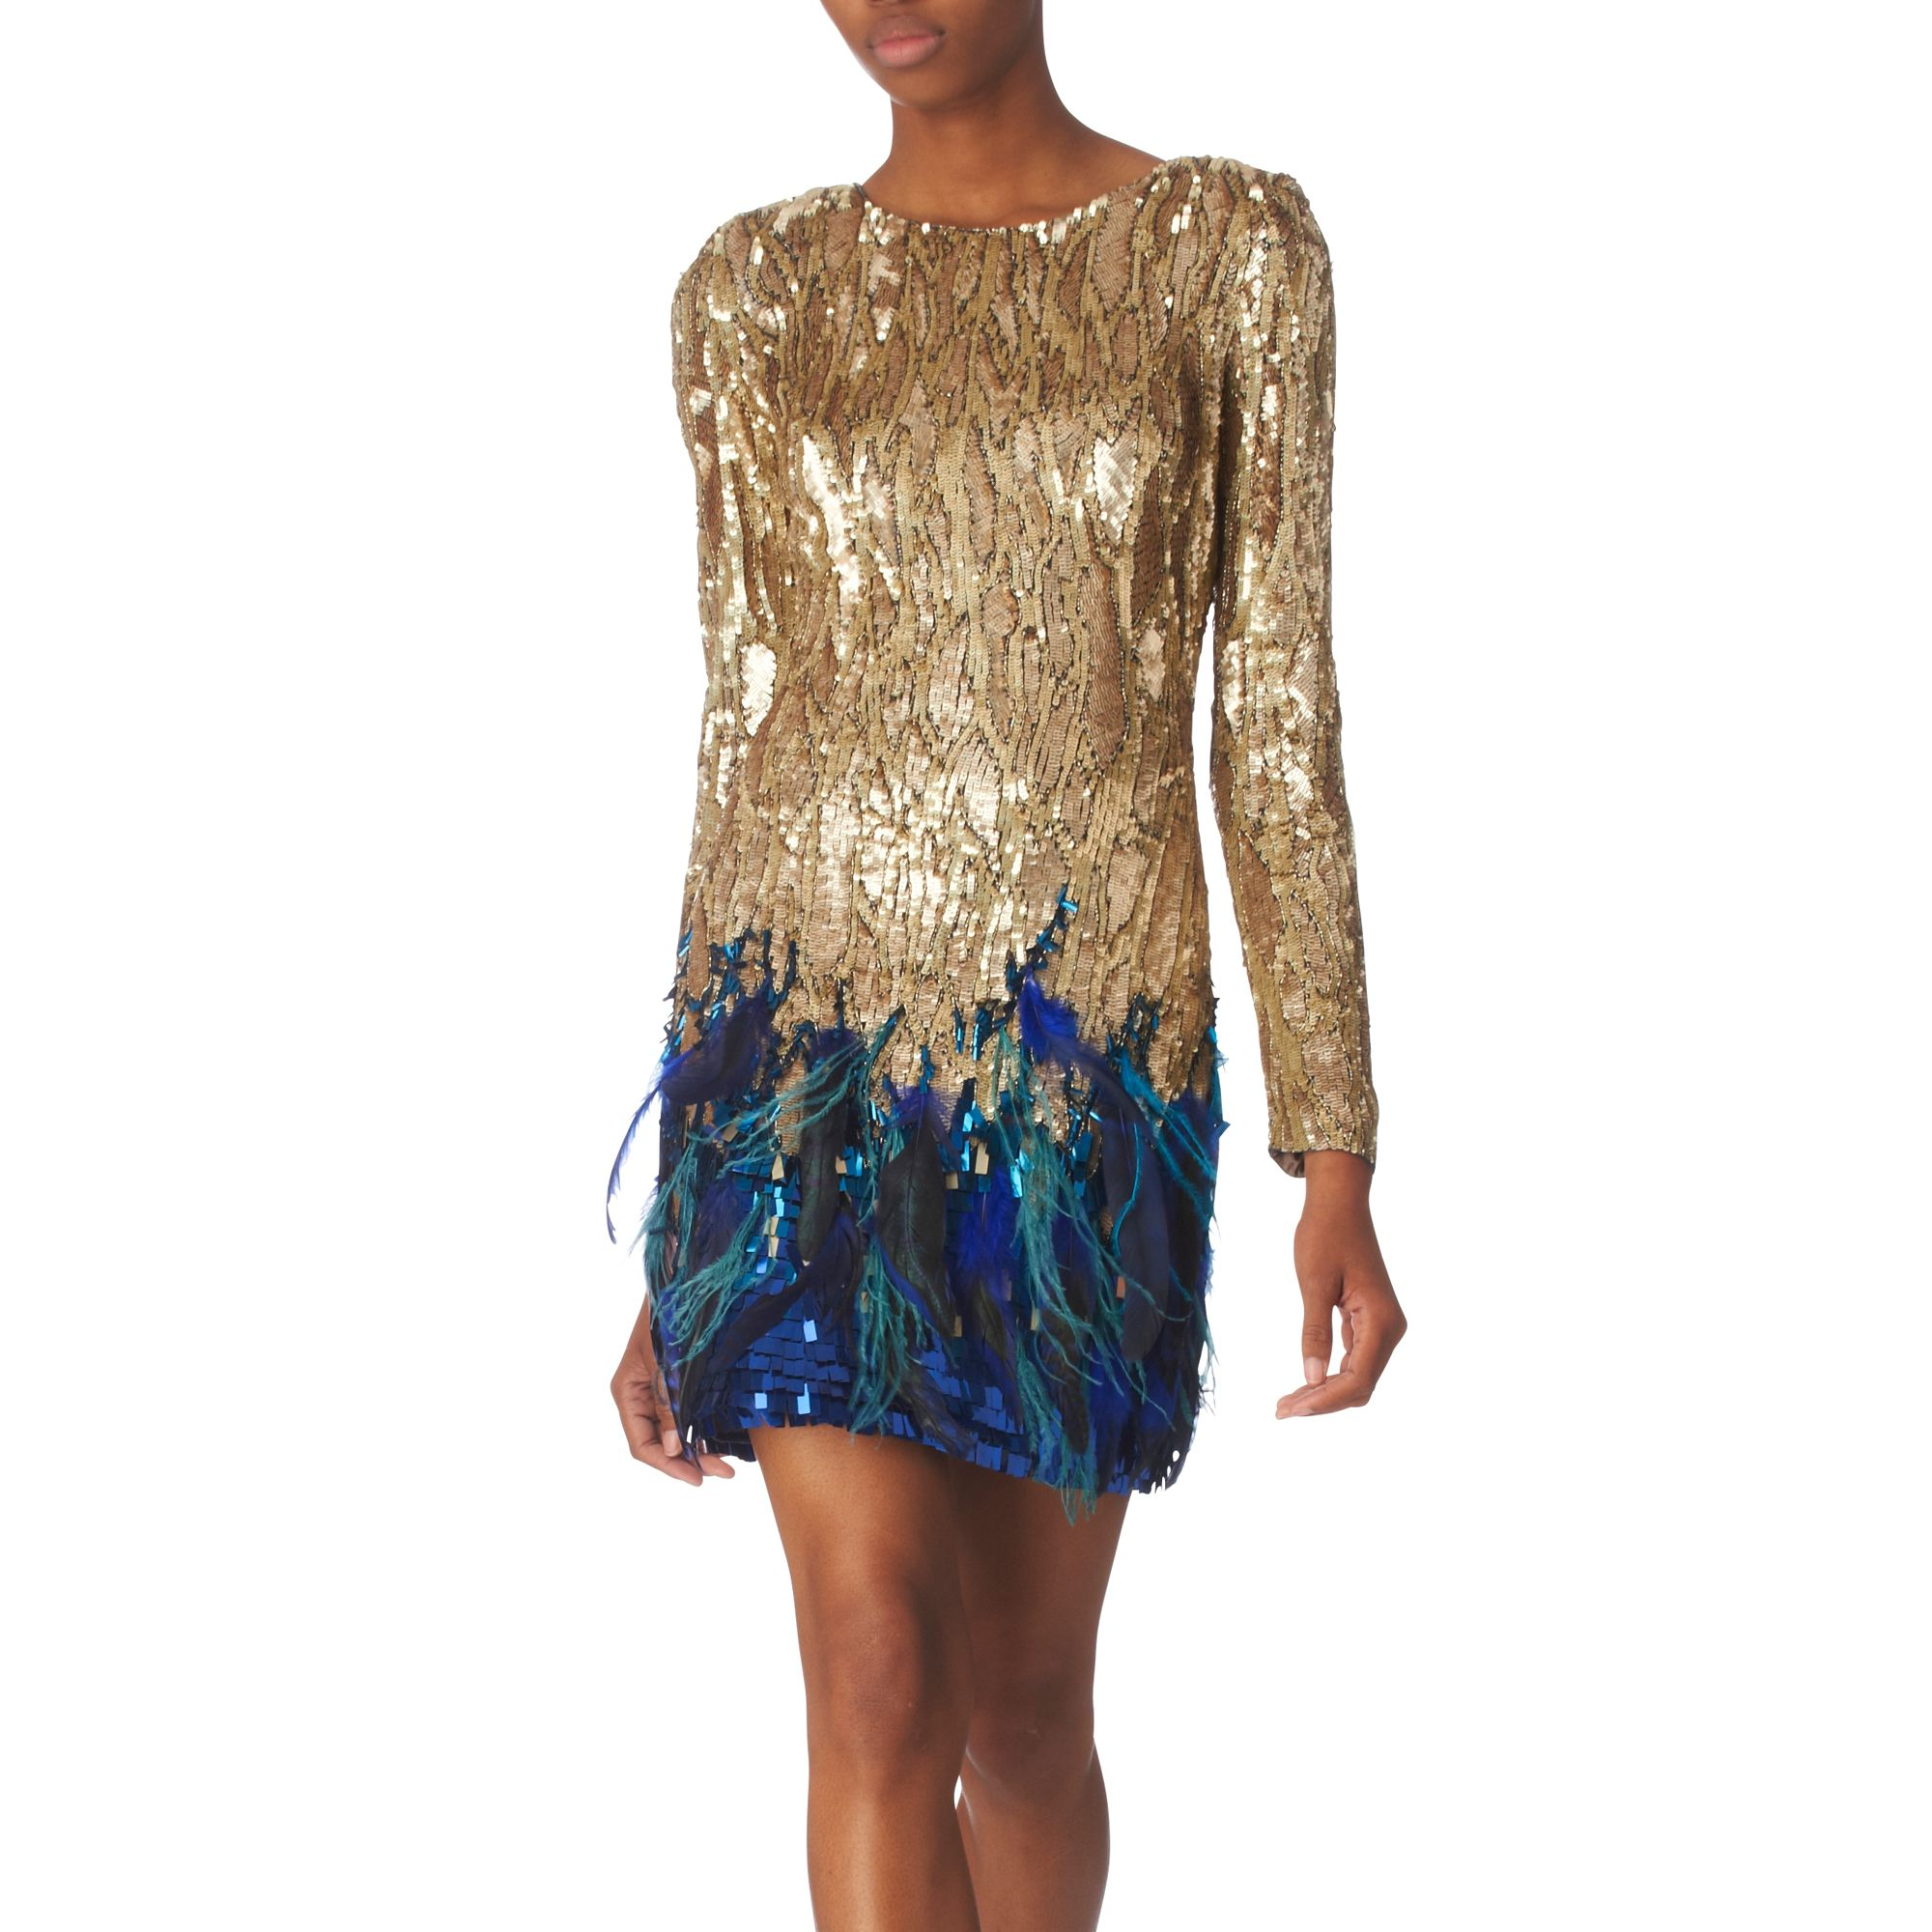 Matthew williamson gold liquid sequin dress